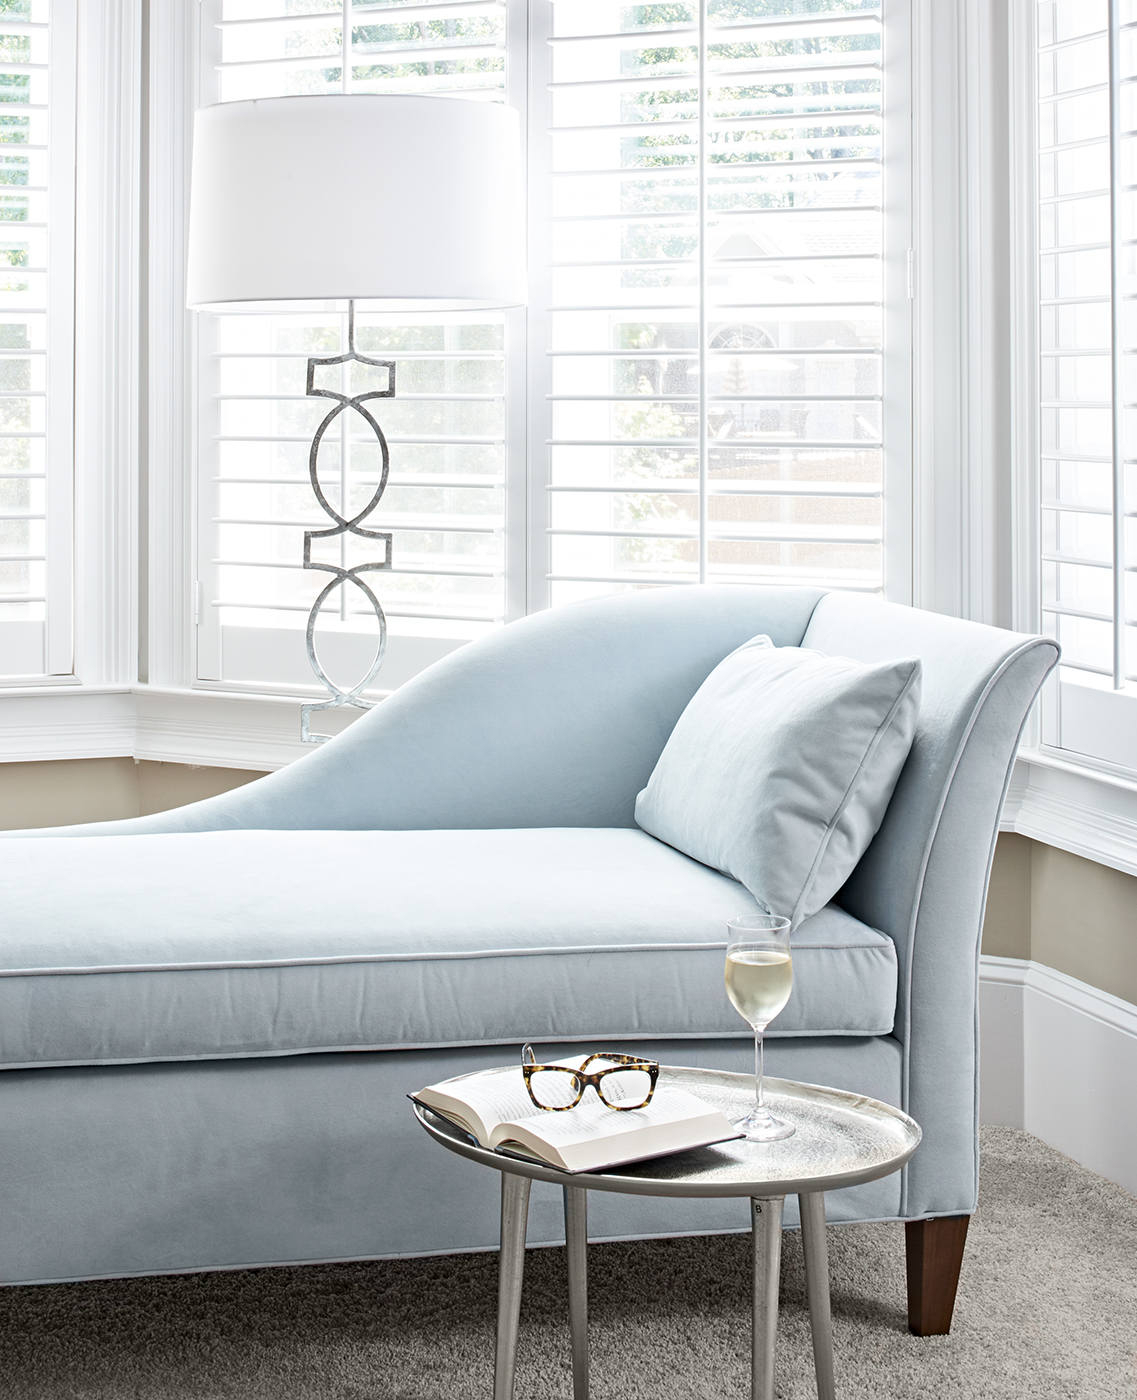 Soft blue chaise perfect for reading and a glass of wine